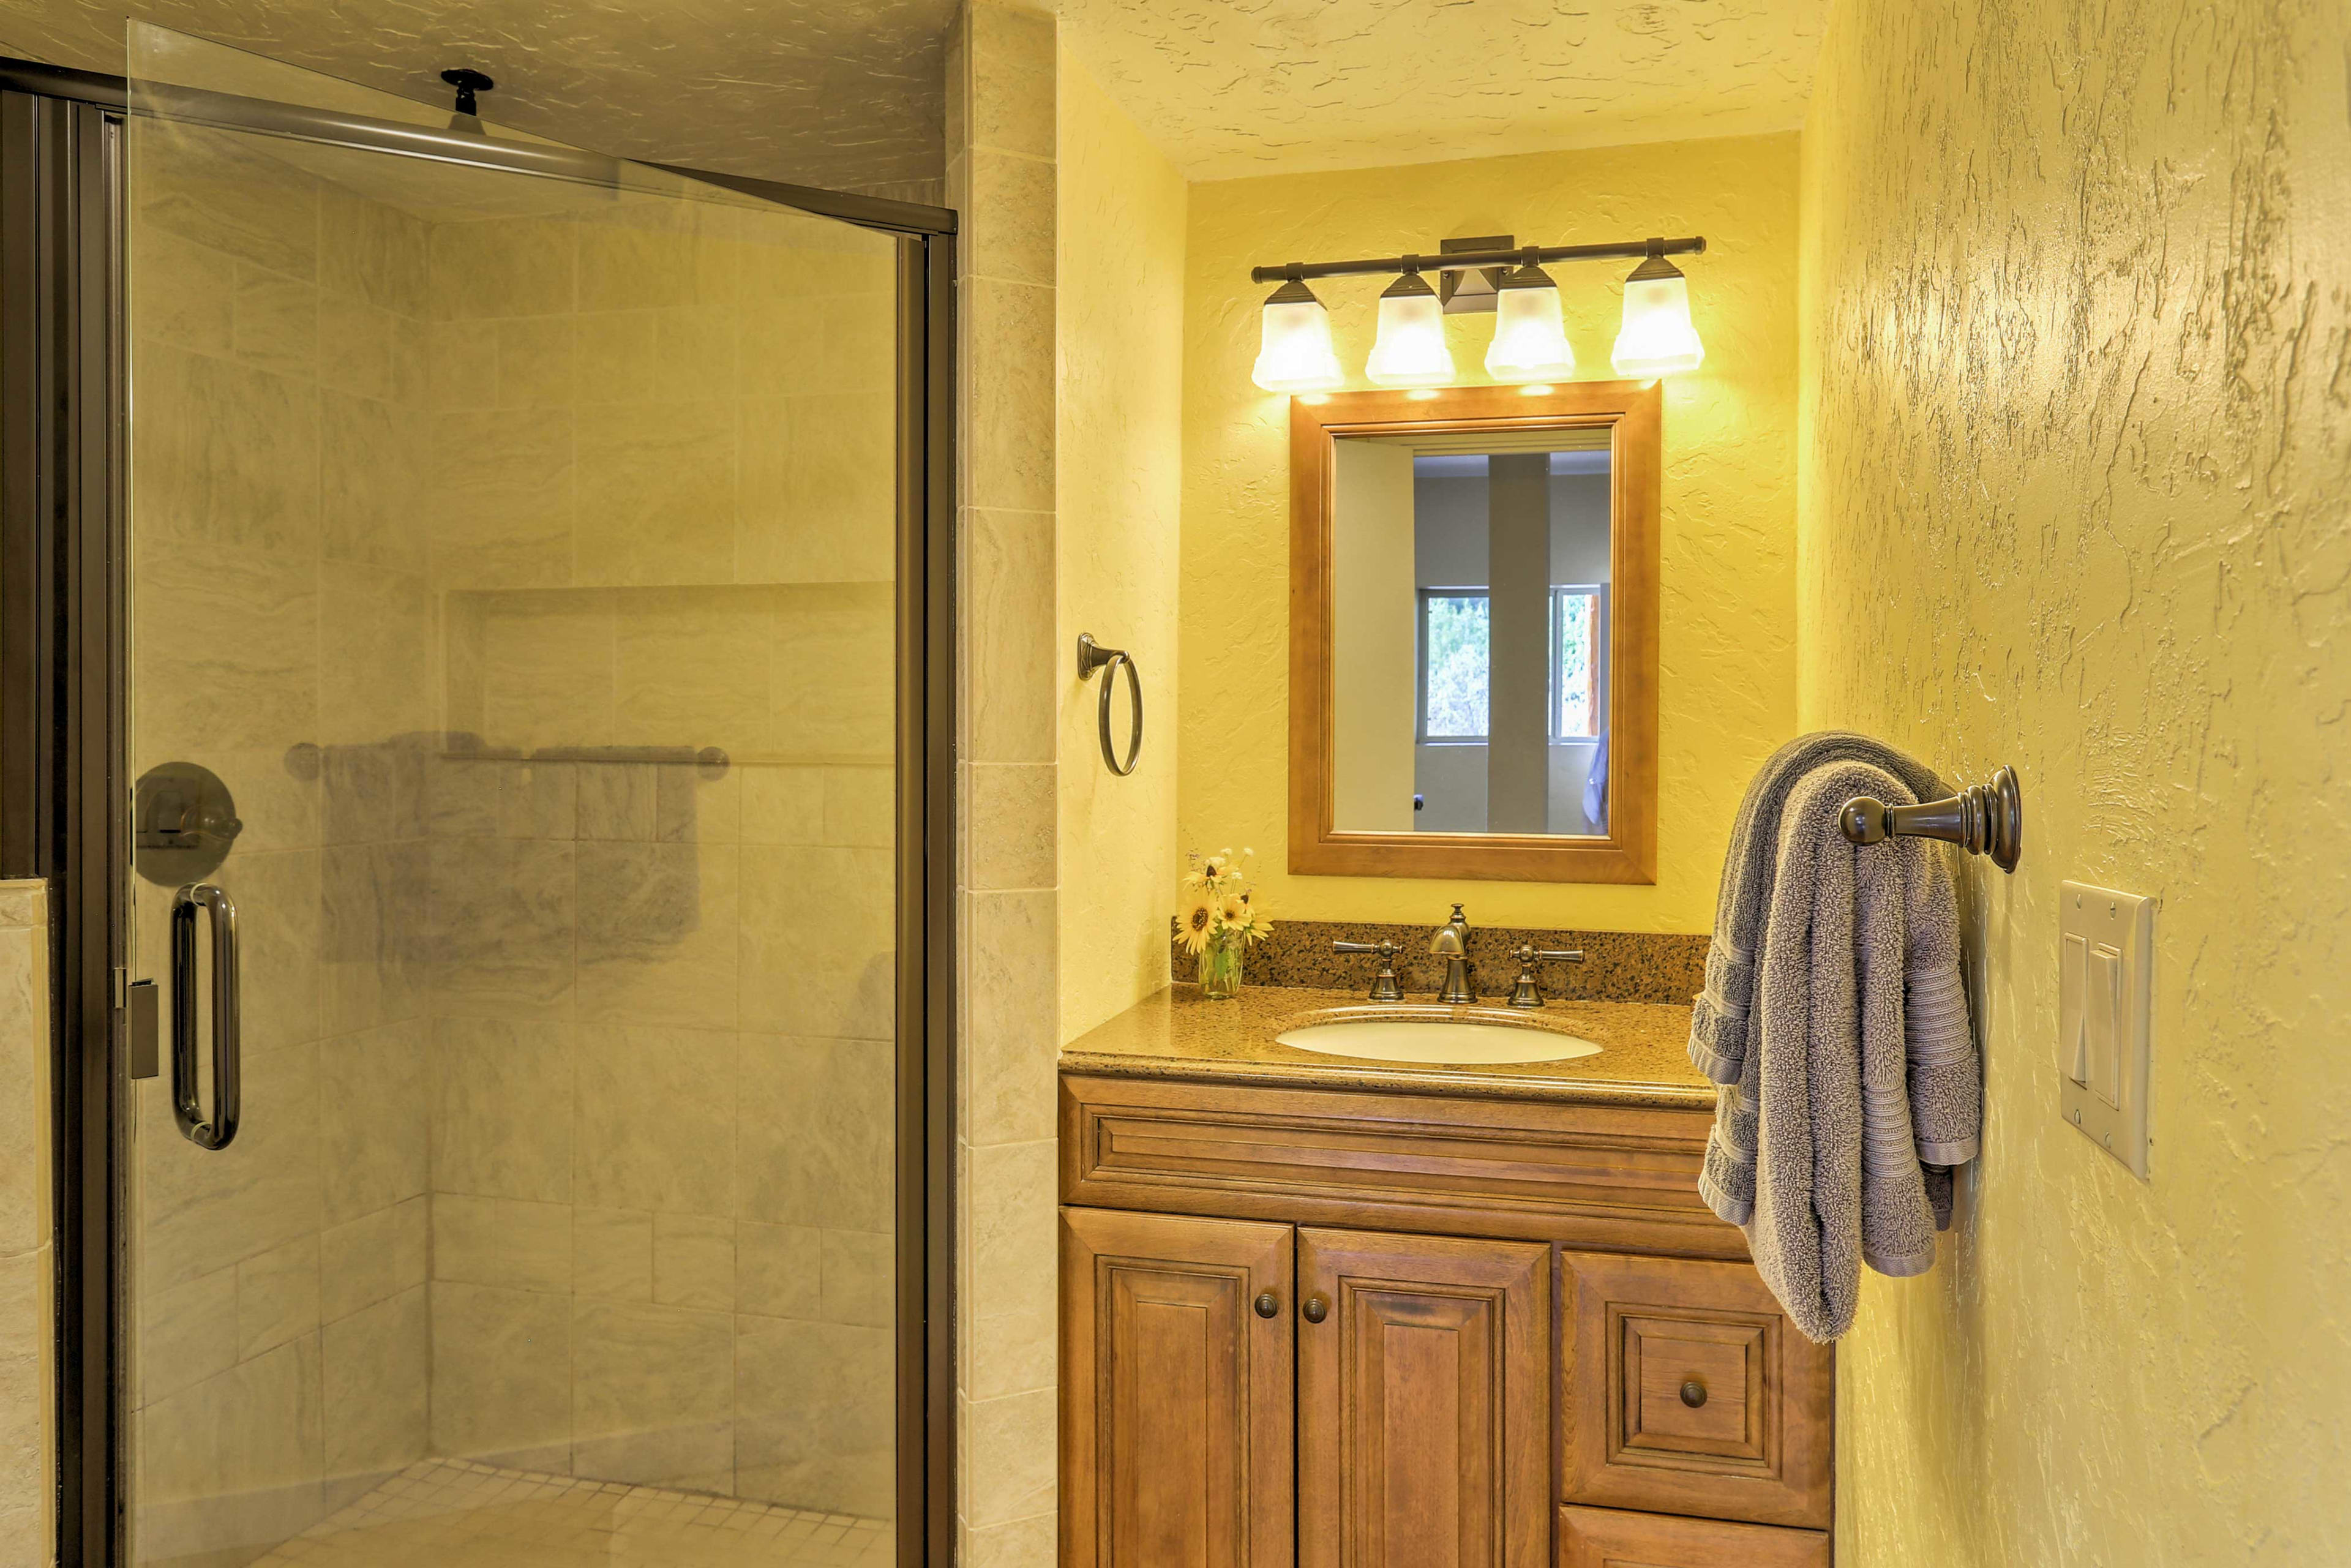 The second bathroom offers a walk-in shower.